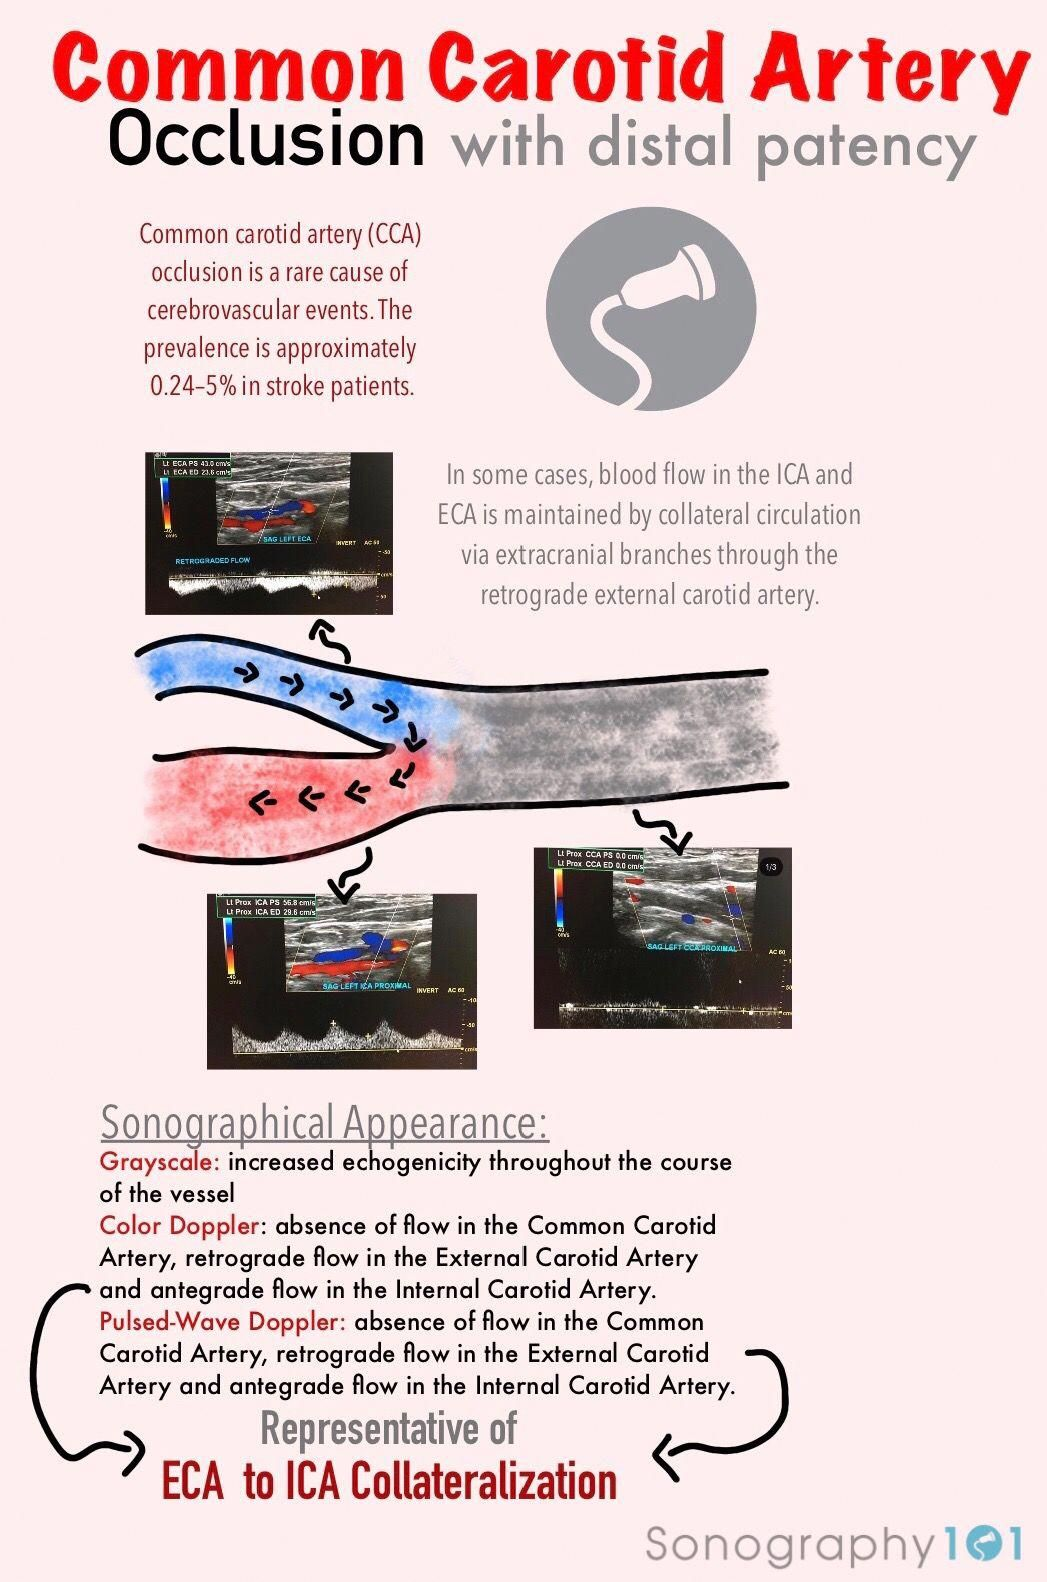 Common Carotid Artery Occlusion Infographic in 2020